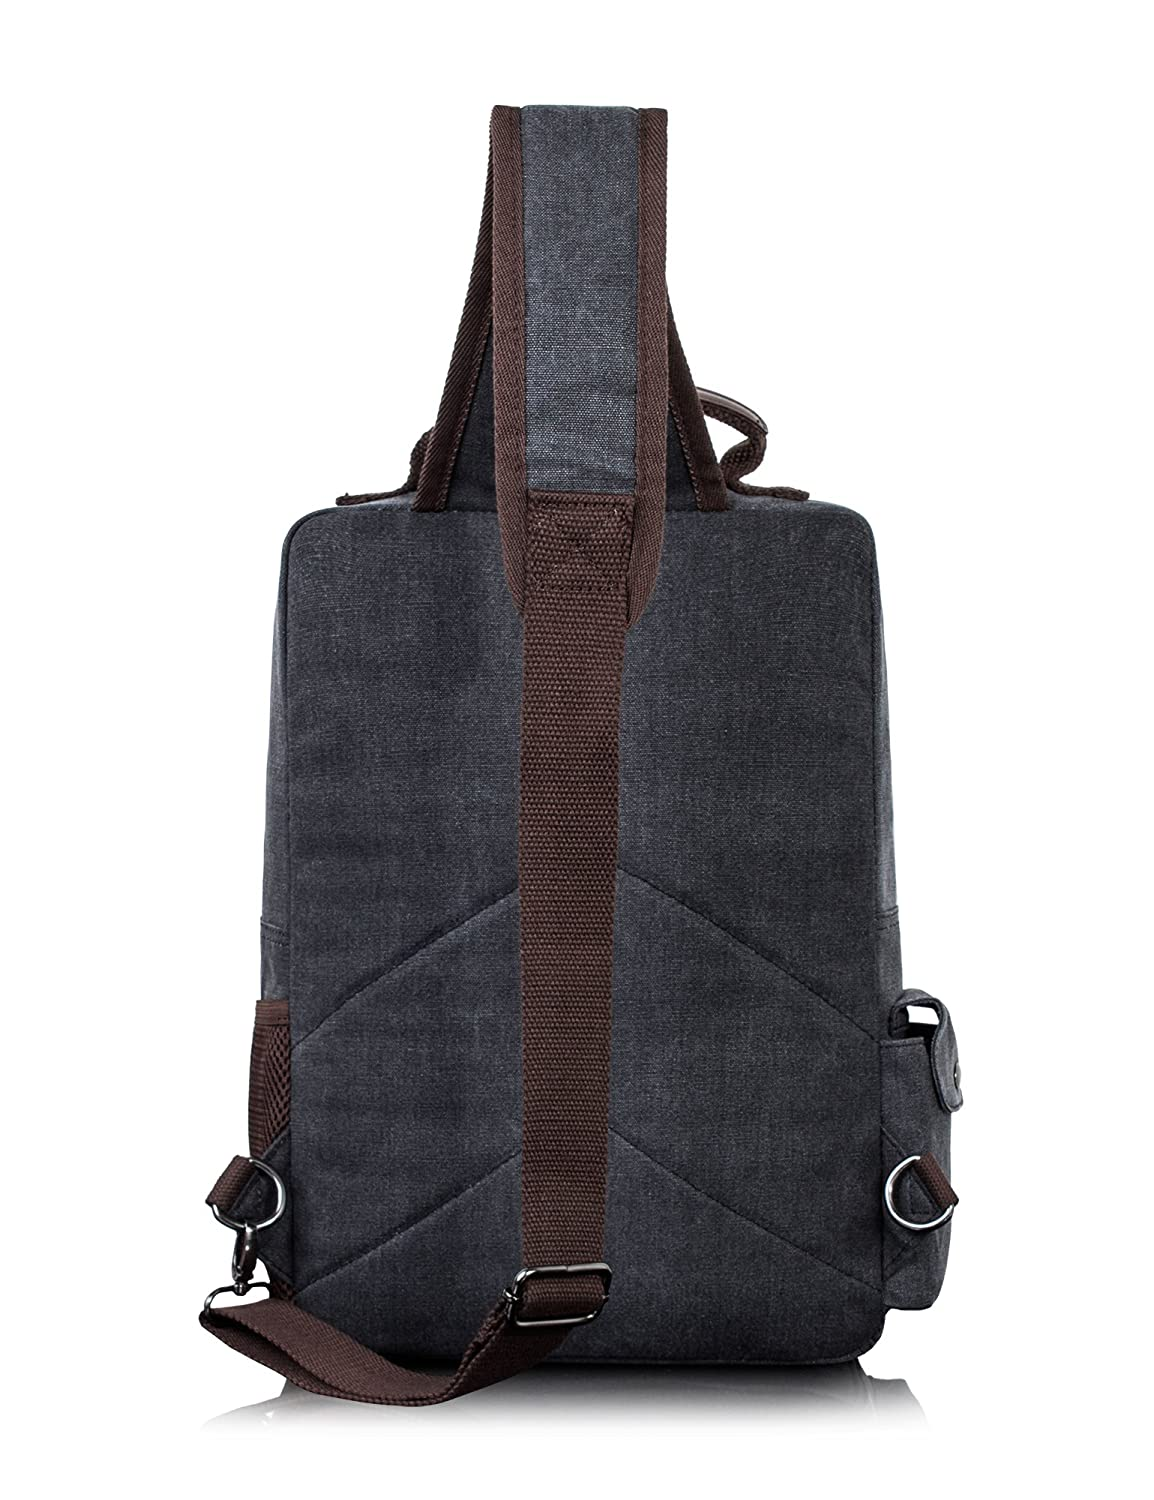 H Hikker-Link Mens Canvas Messenger Bag Laptop Sling Backpack Crossbody Rucksack